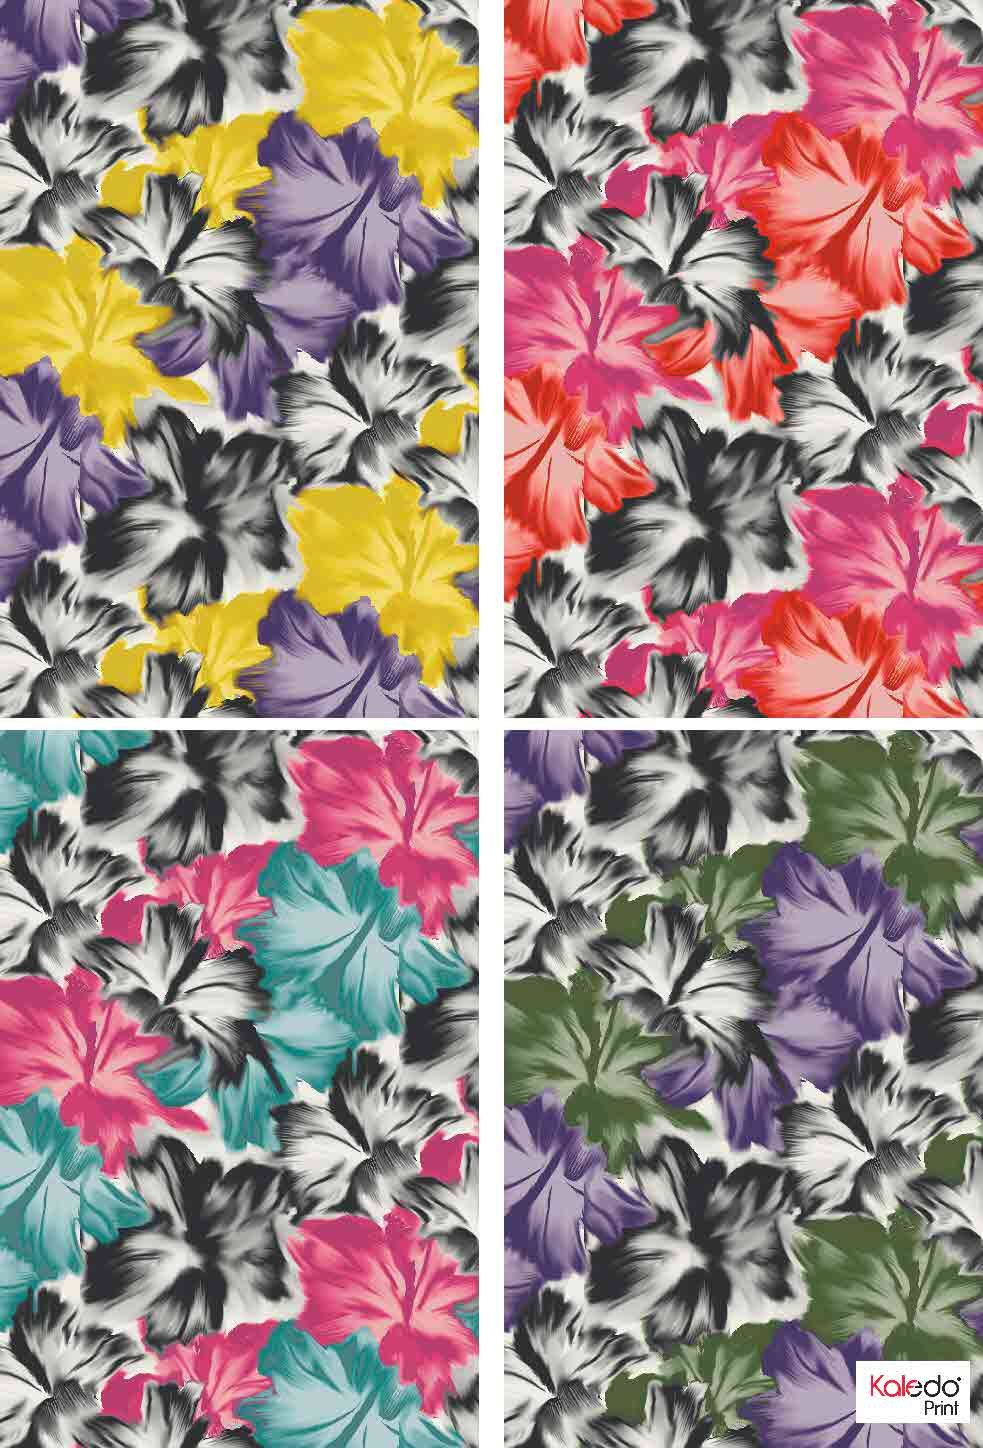 Floral prints created with Kaledo Print. Discover more at www.lectra.com.